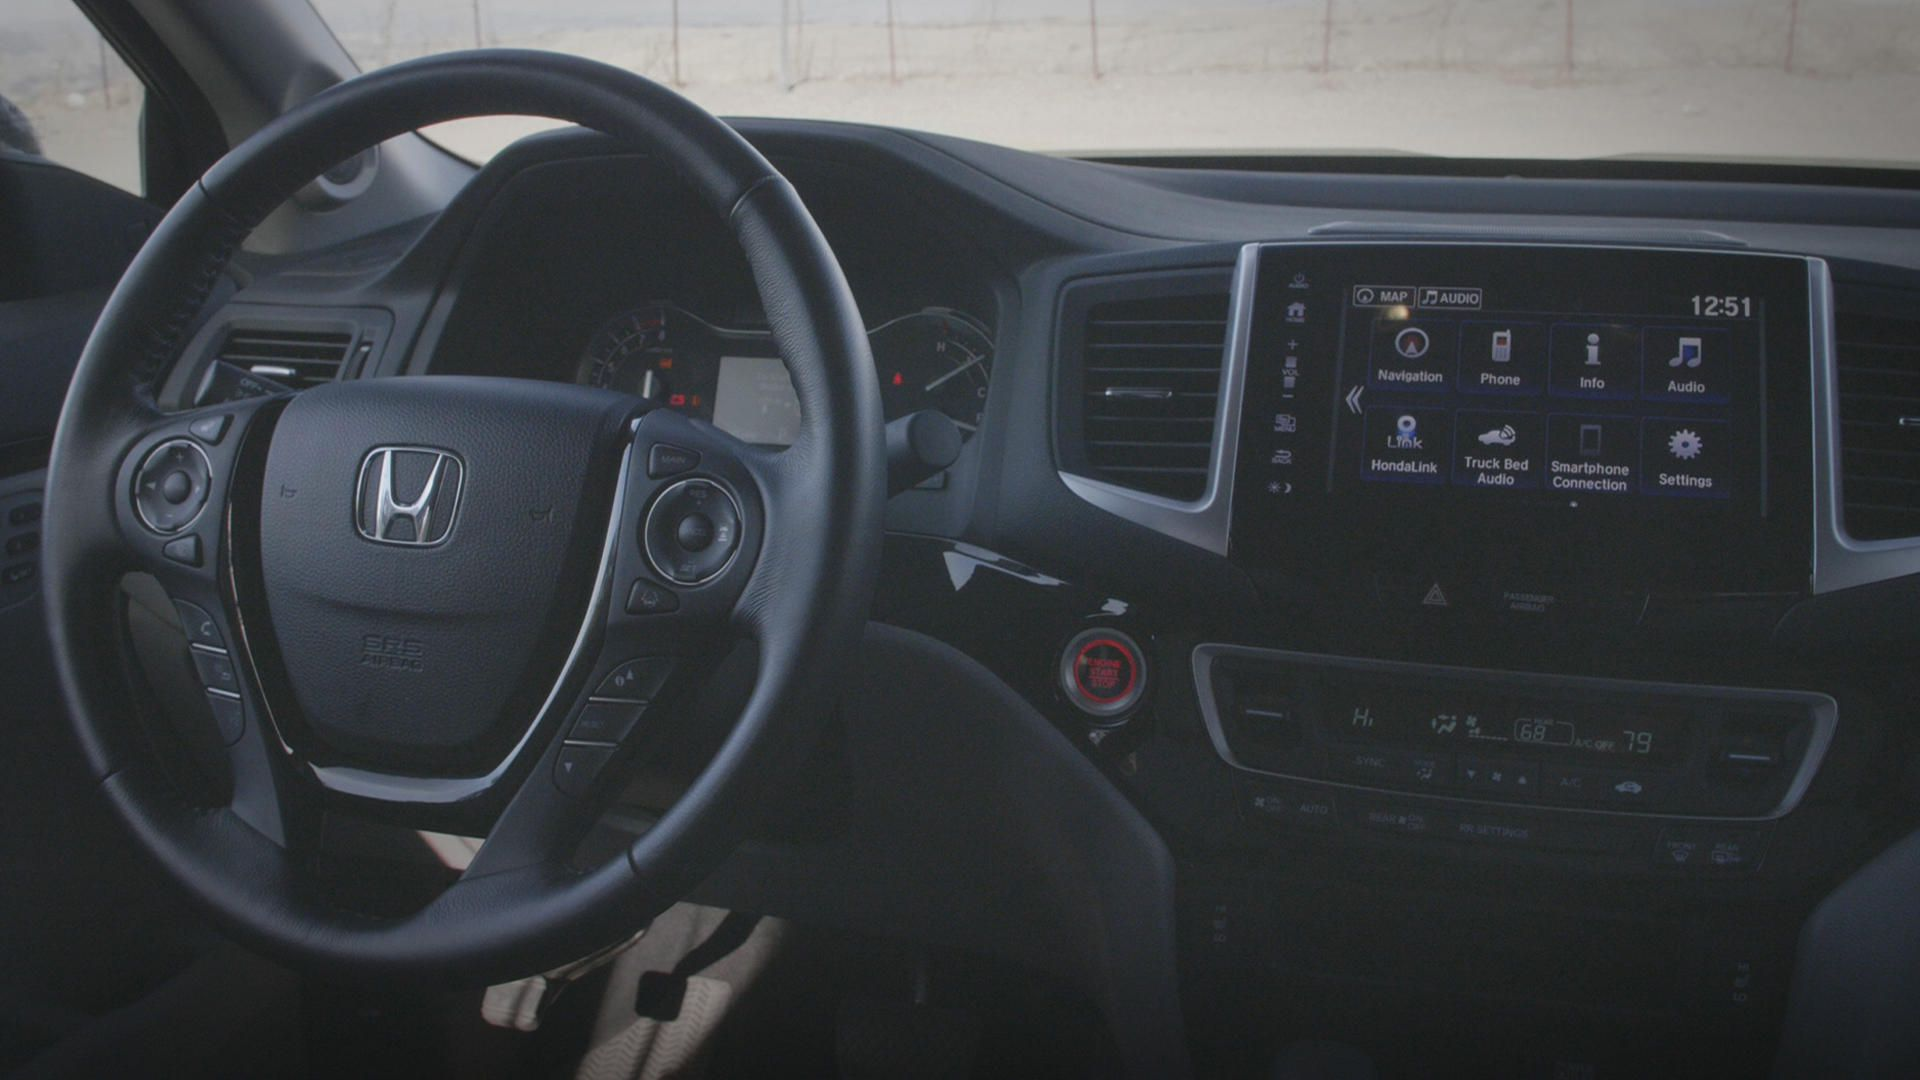 Deep dive Take a look at all the tech in the Honda Ridgeline 1920x1080